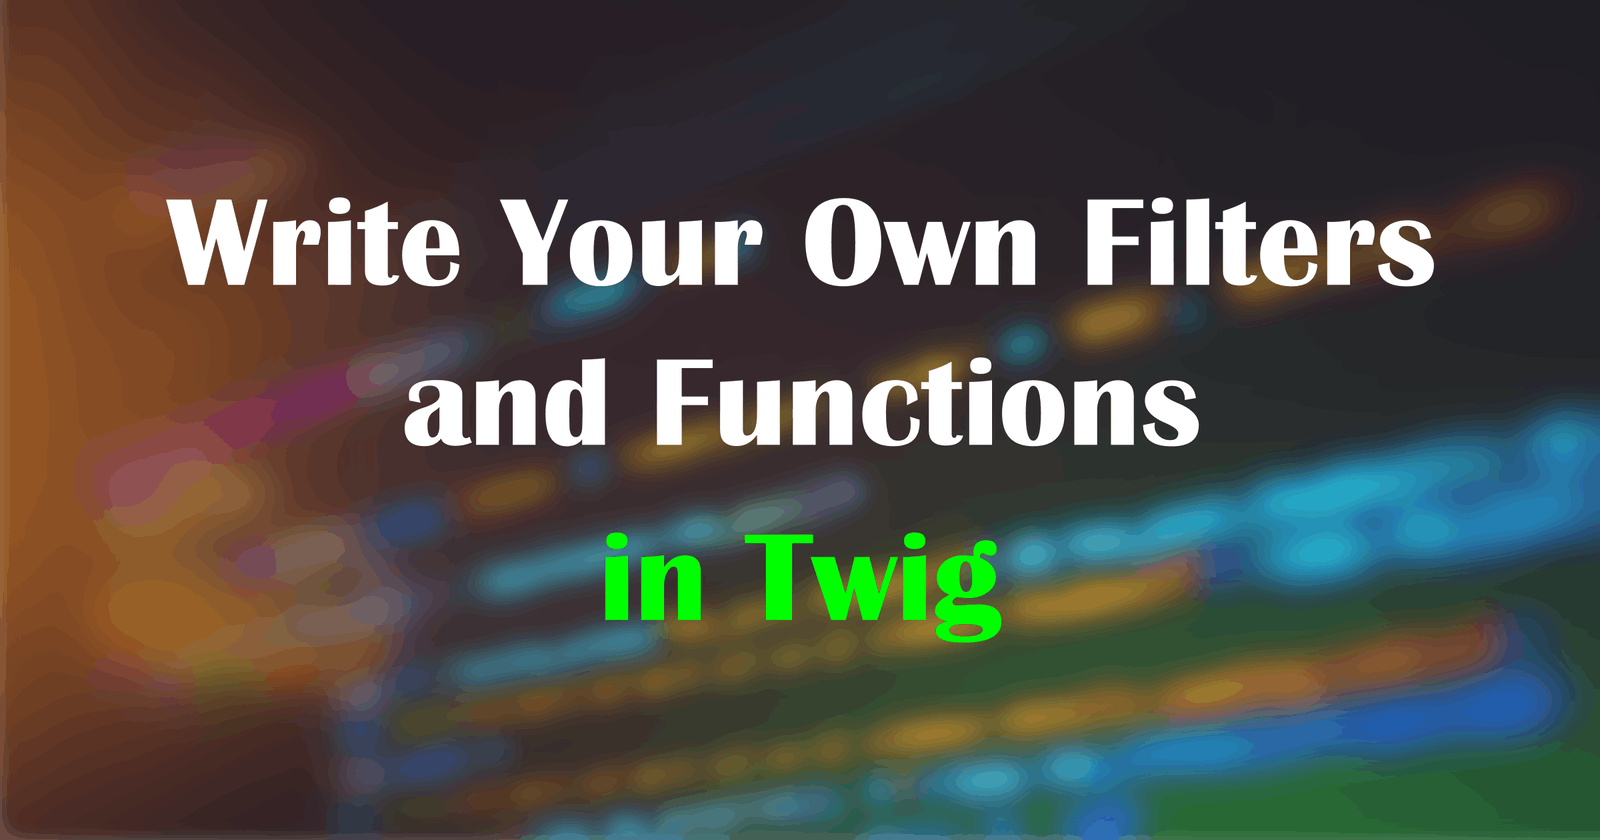 Write Your Own Filters and Functions in Twig